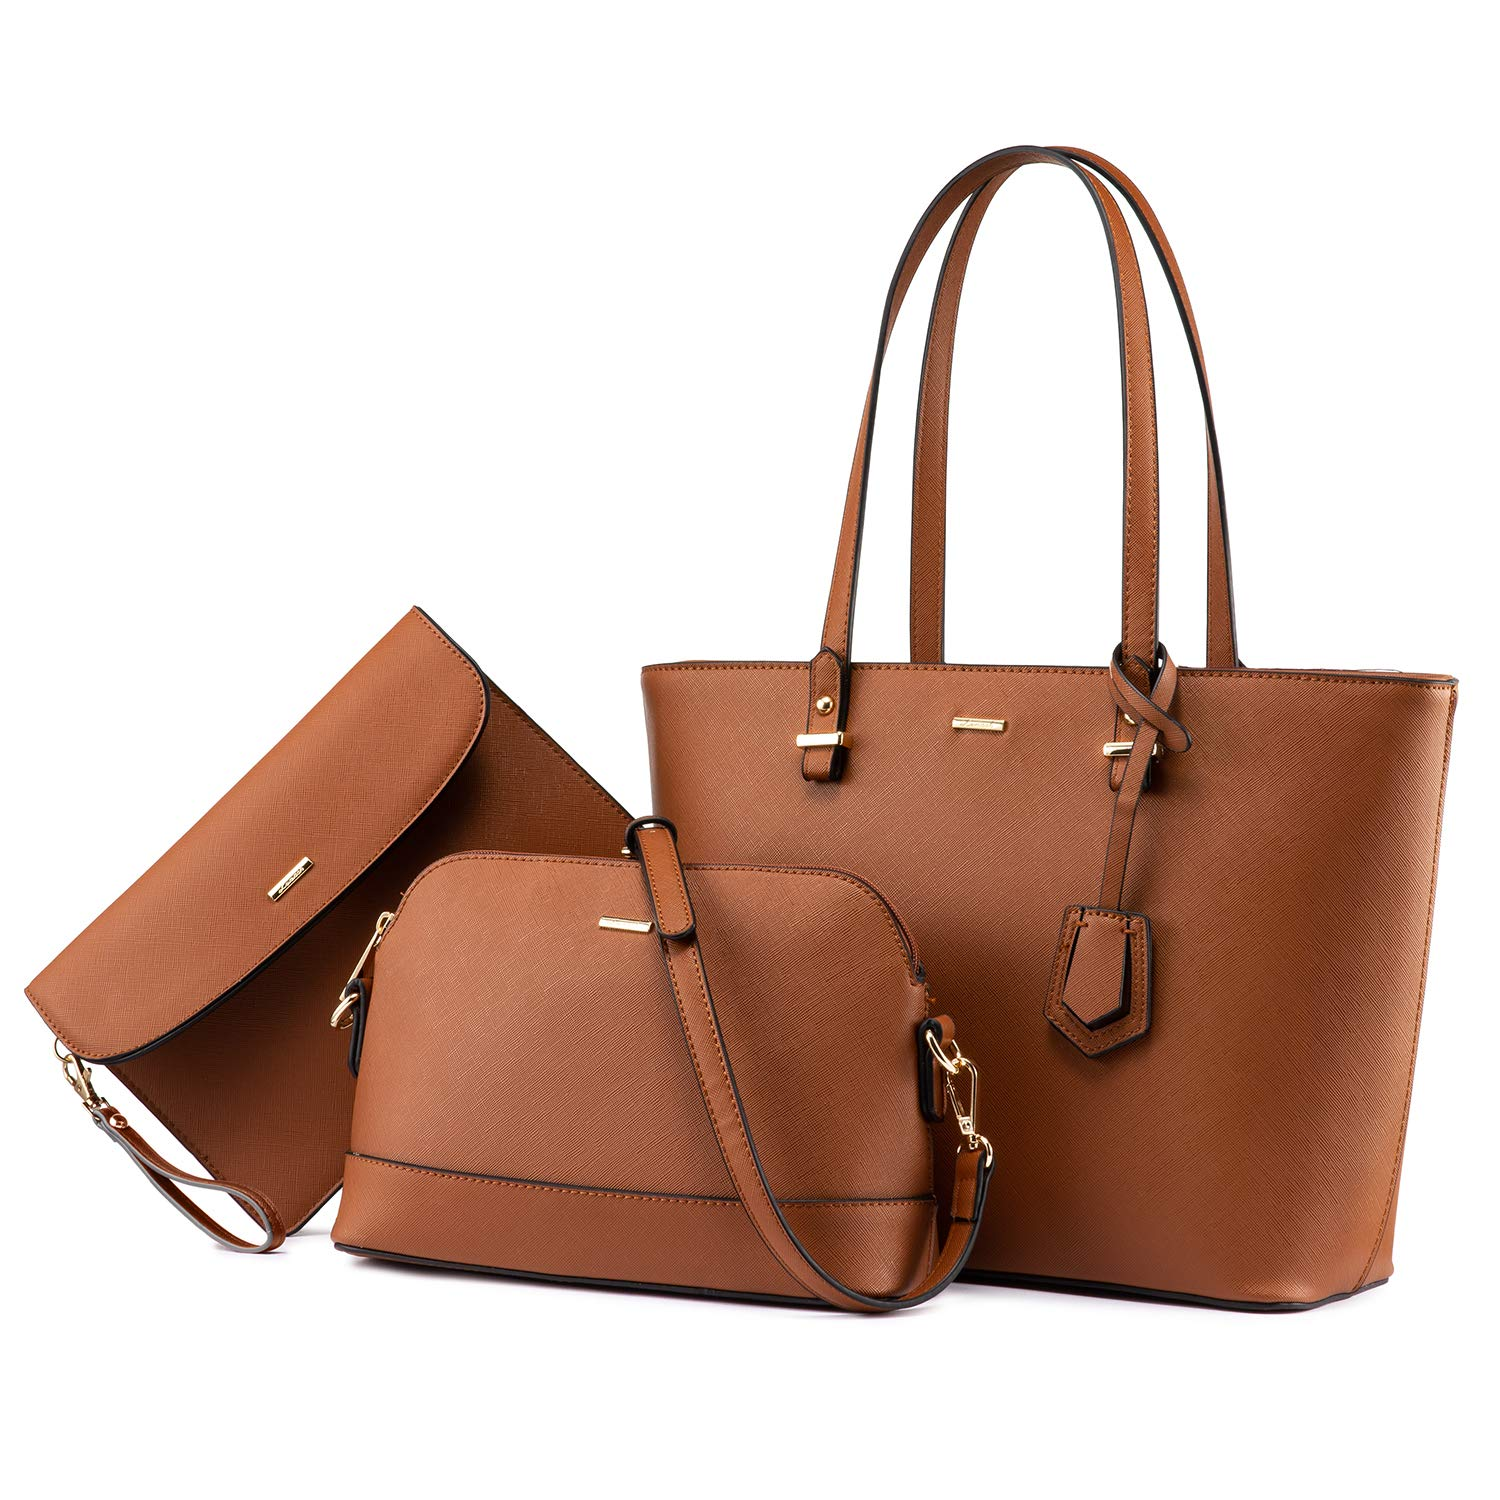 Handbags for Women Tote Bag Fashion Satchel Purse Set Hobo Shoulder Bags Designer Purses 3PCS PU Top Handle Structured Gift Fashion Brown